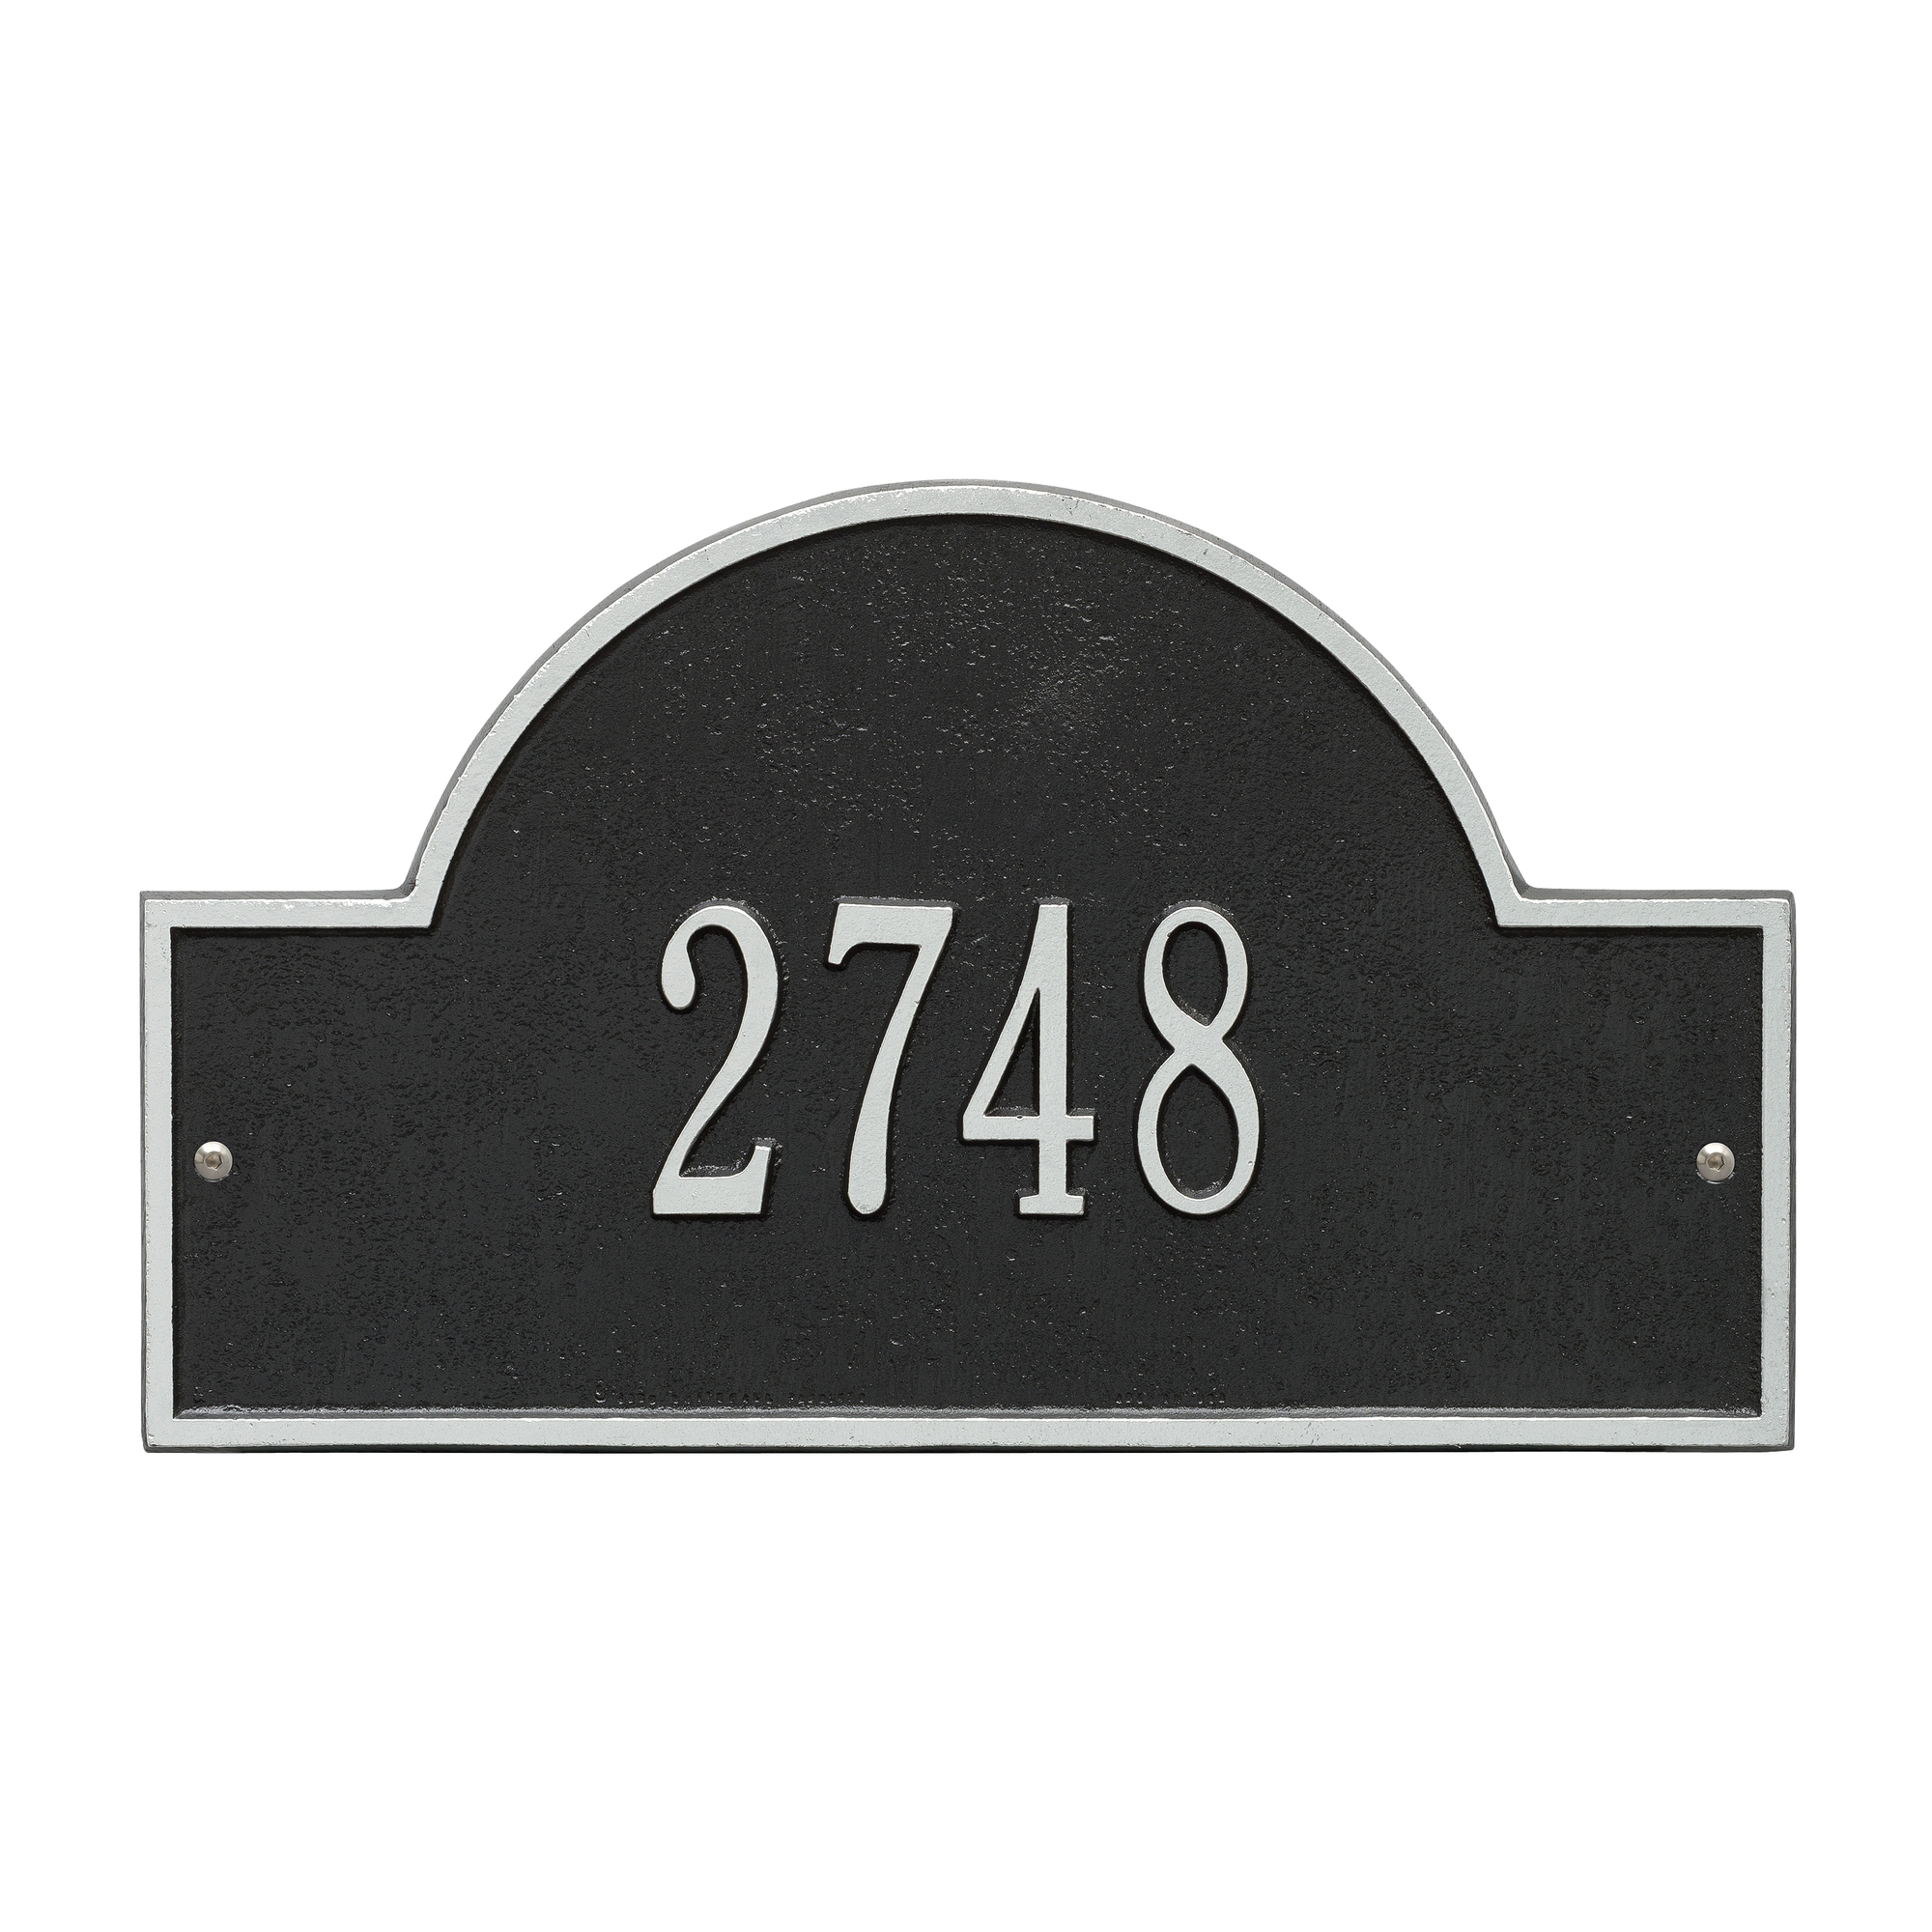 Personalized Whitehall Products Standard Wall One Line Arch Marker Address Plaque in Black... by Address Plaques